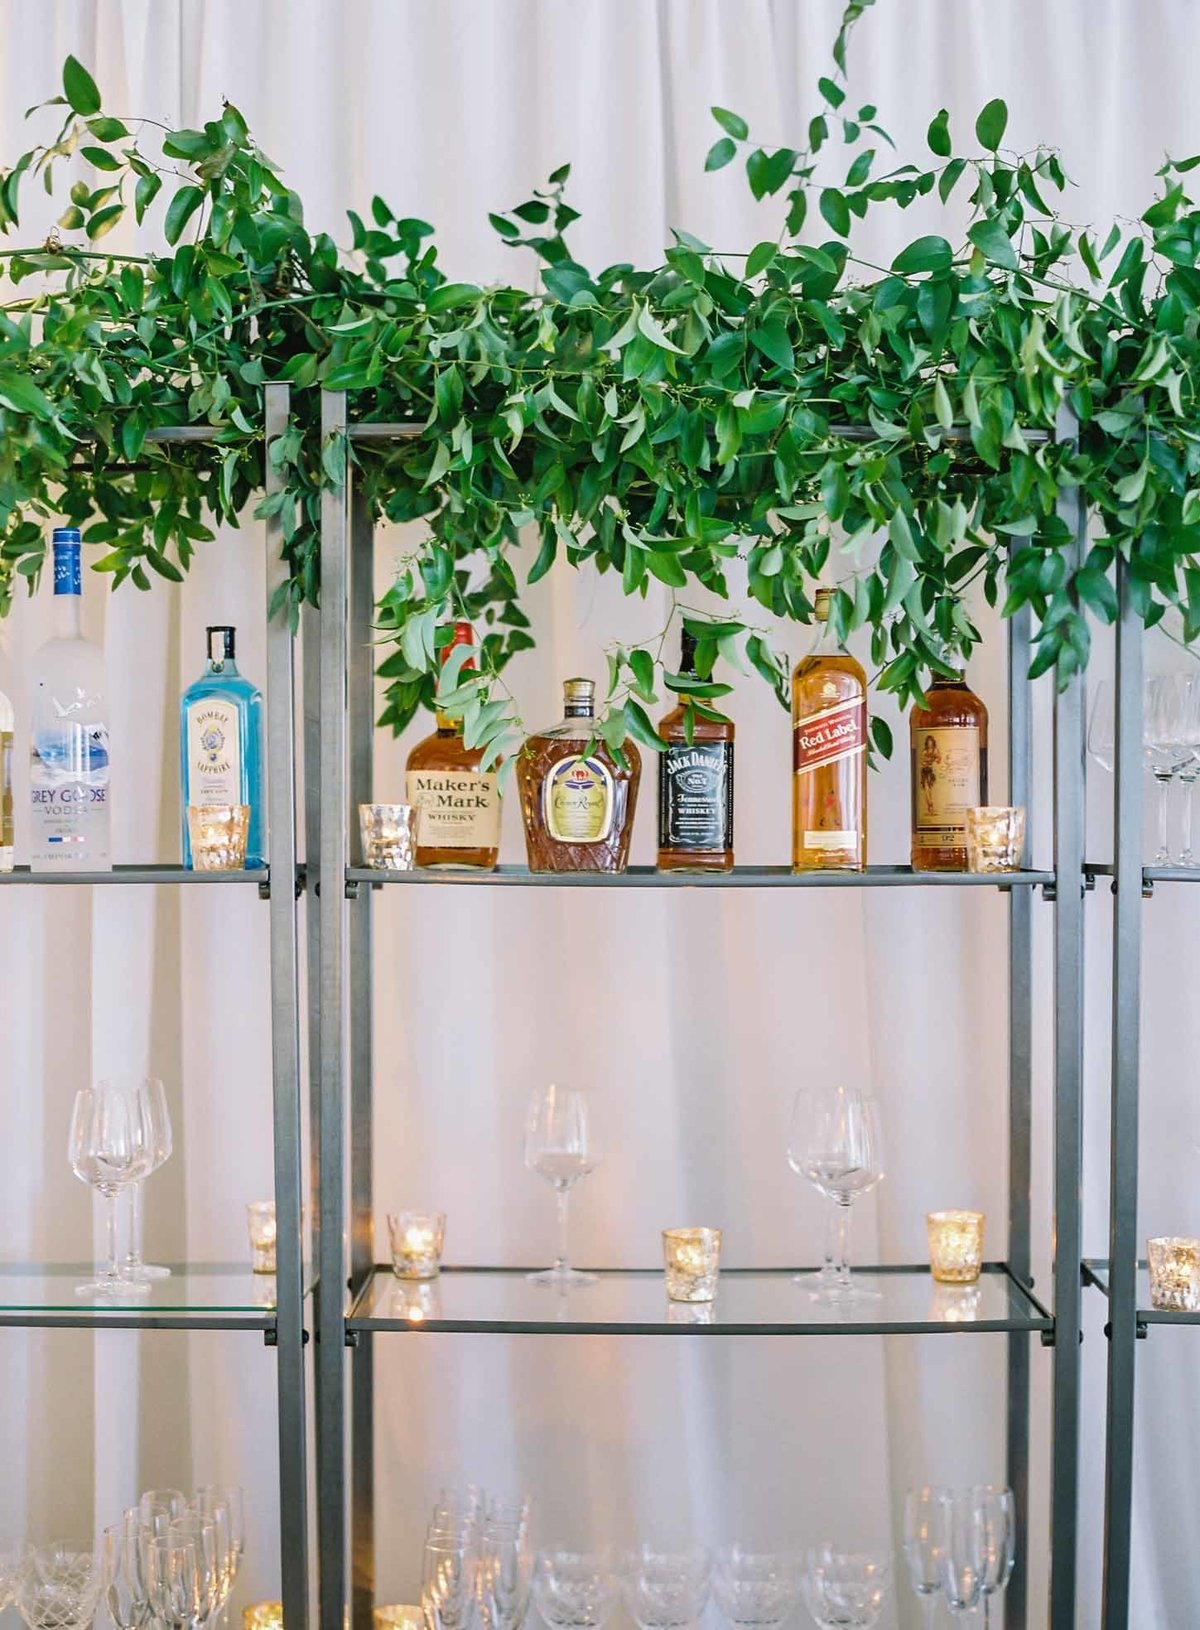 Wedding reception bar shelves covered in green vines and glowing with candle light is so romantic.